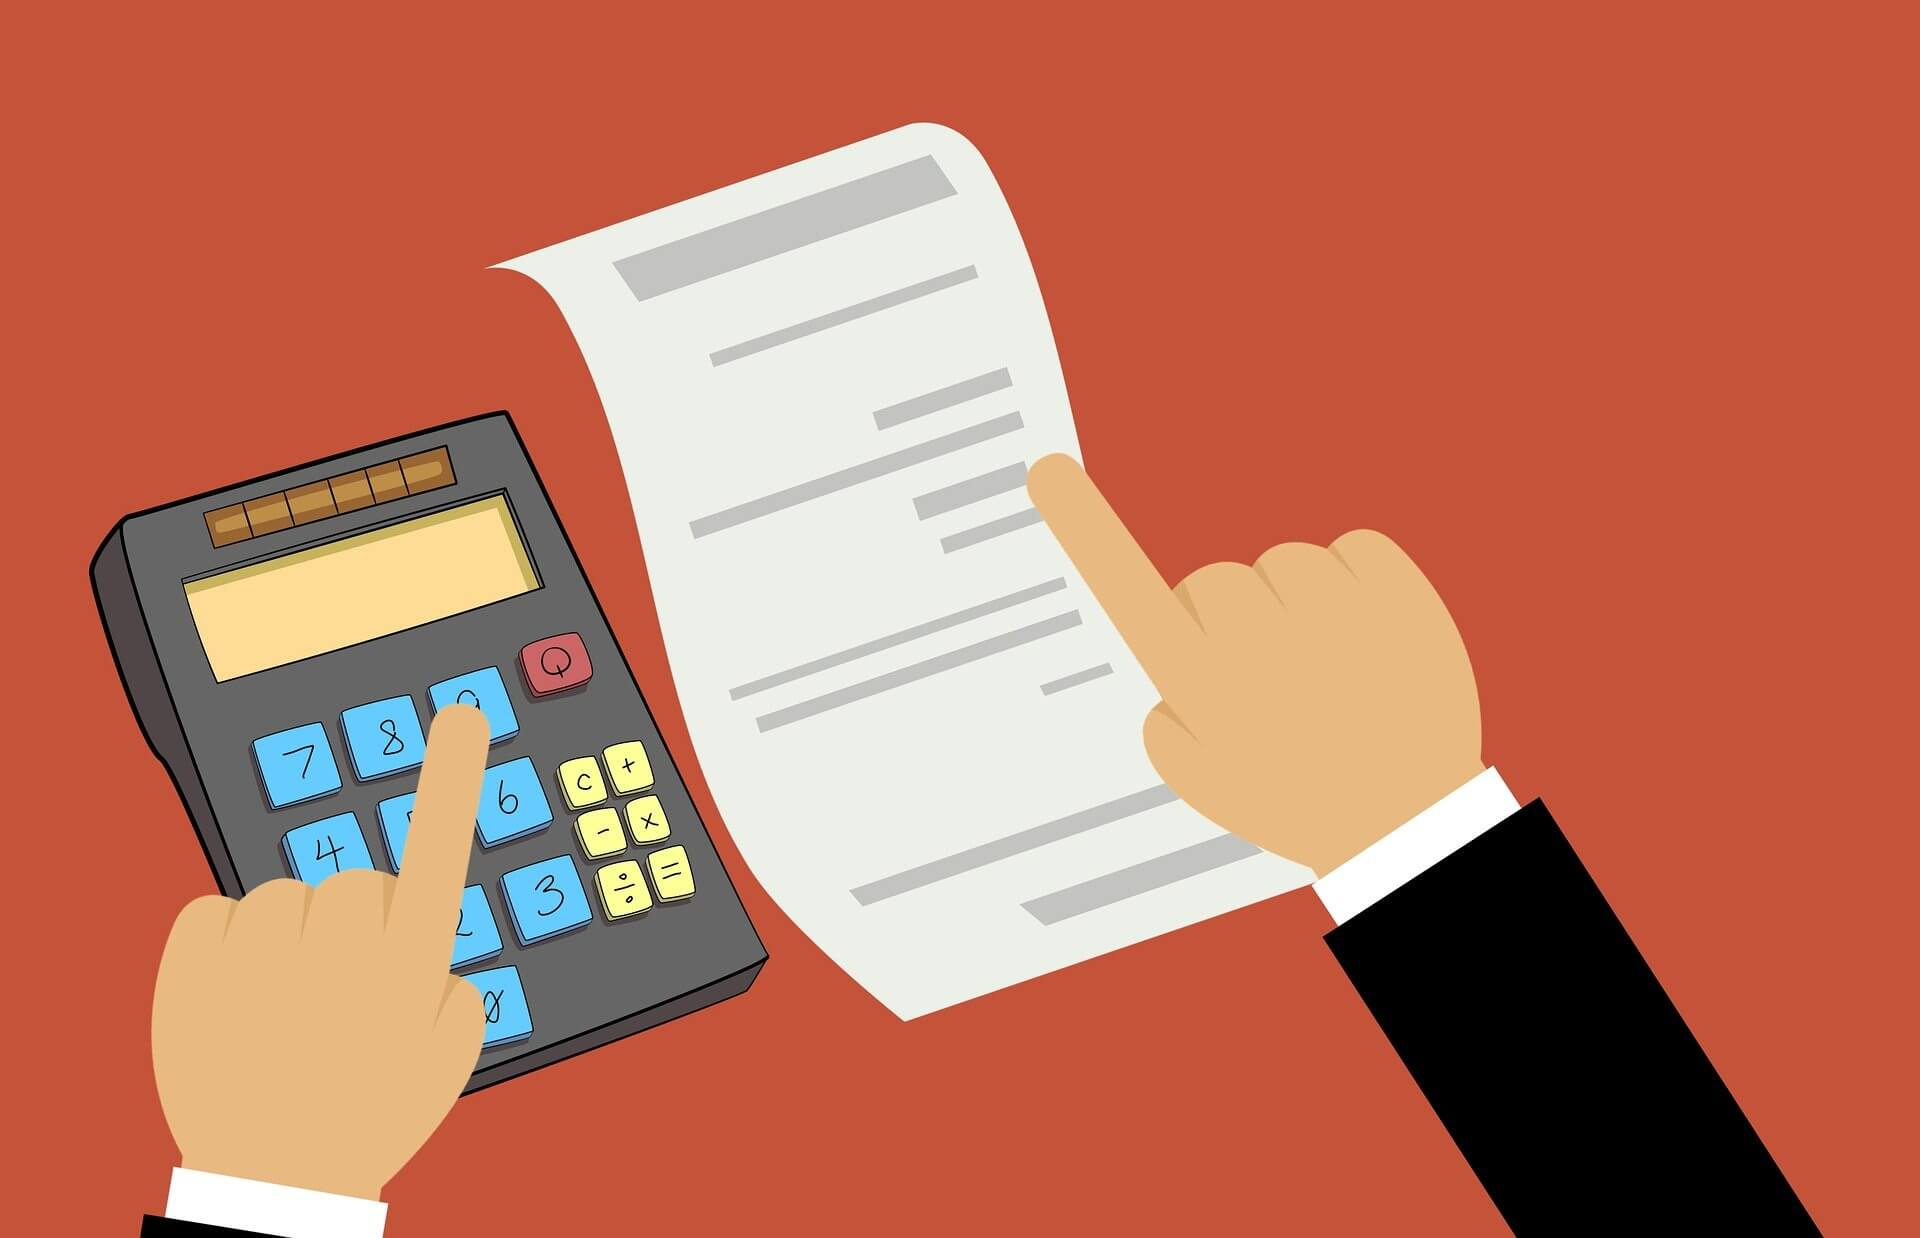 Typical Late Fee For Invoices: What You Should Know